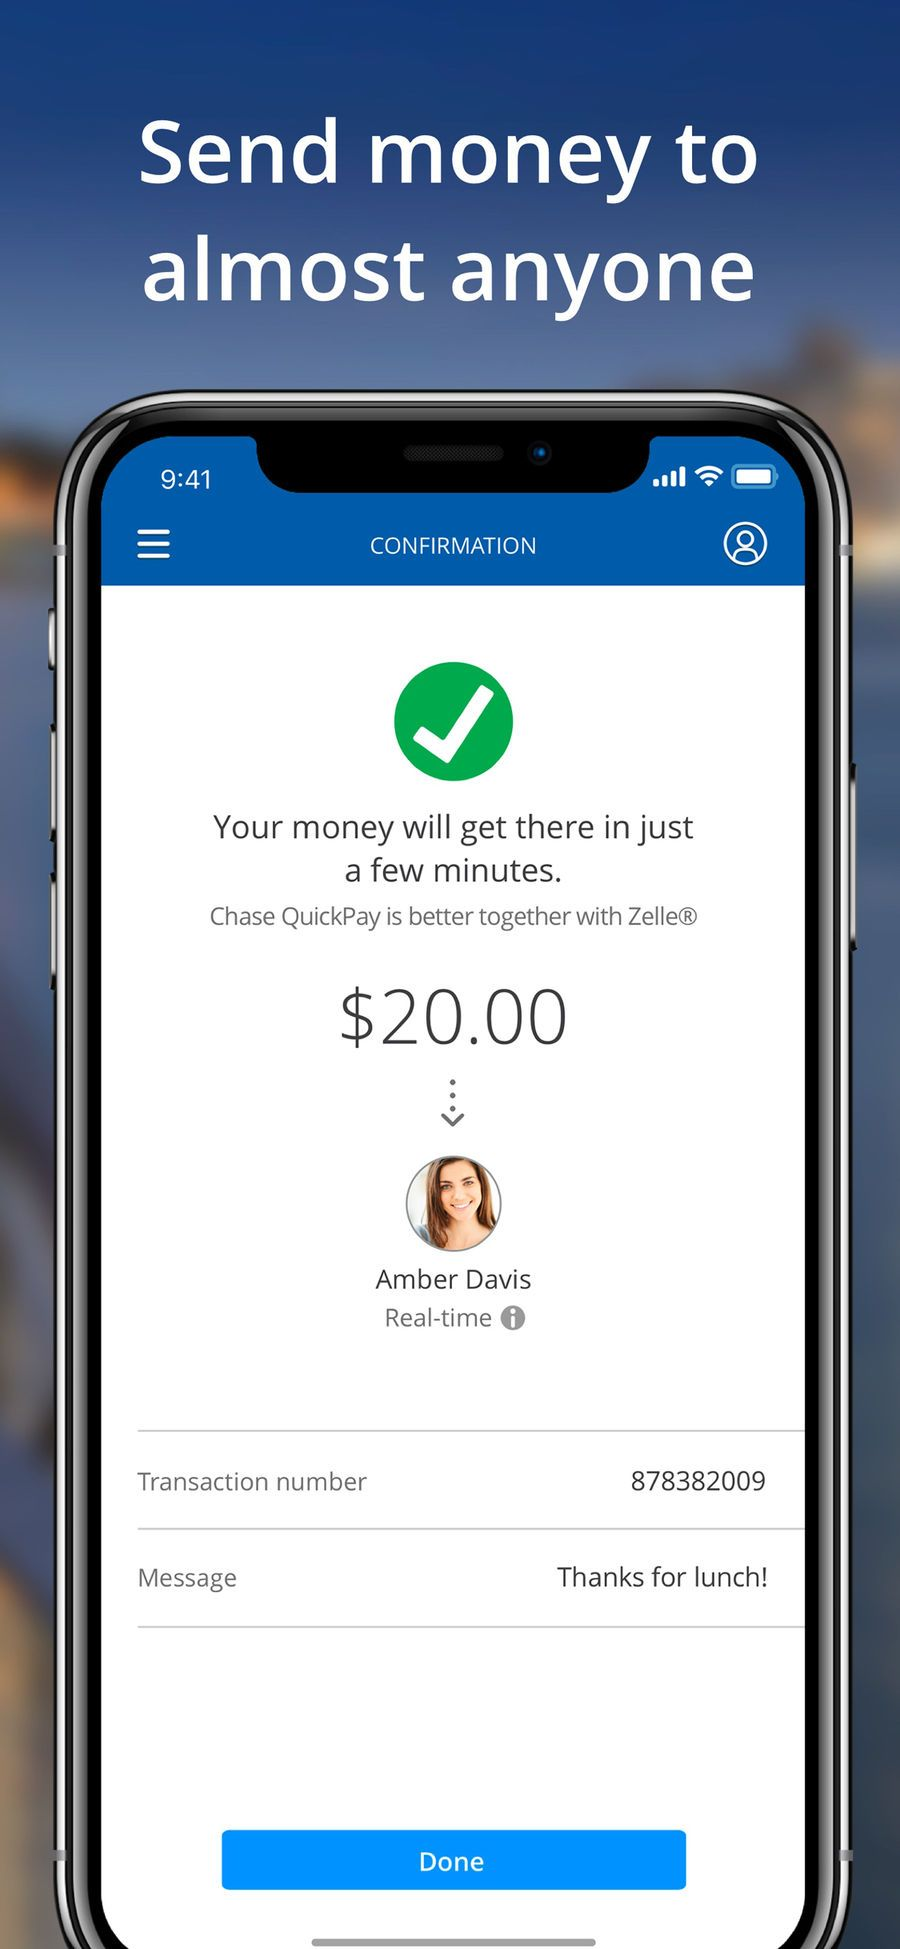 Chase Mobile? #Productivity#Finance#apps#ios | html design | Html